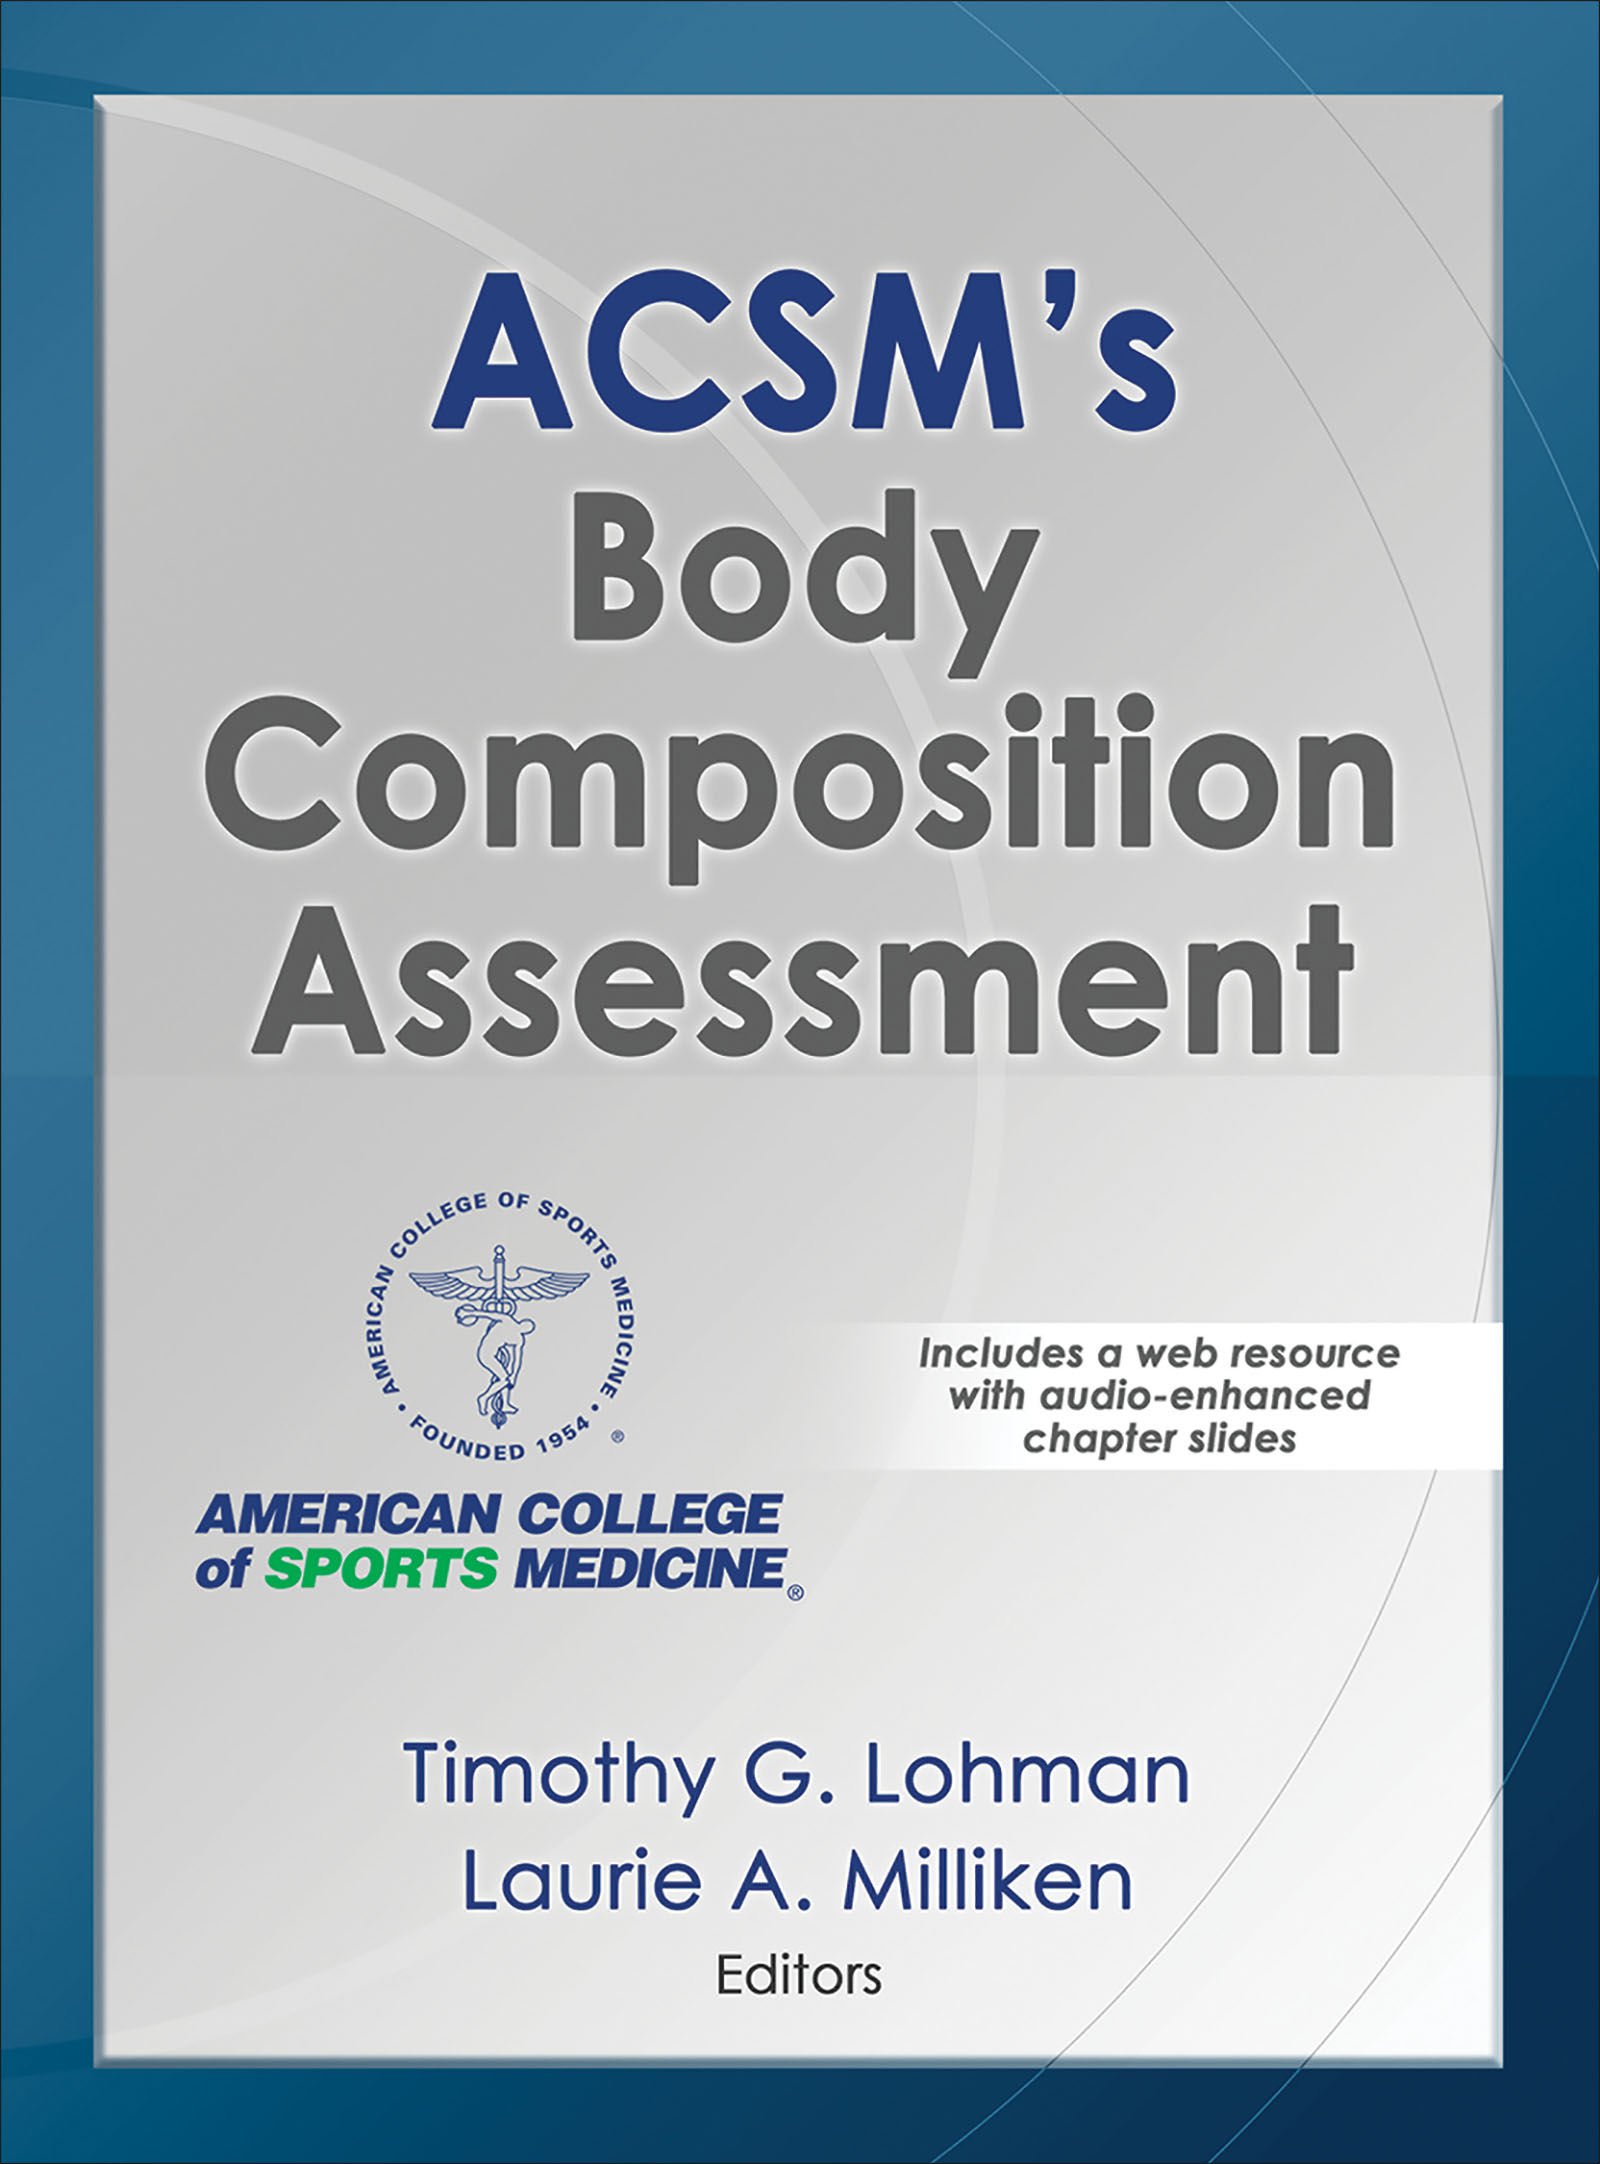 ACSM's Body Composition Assessment With Web Resource